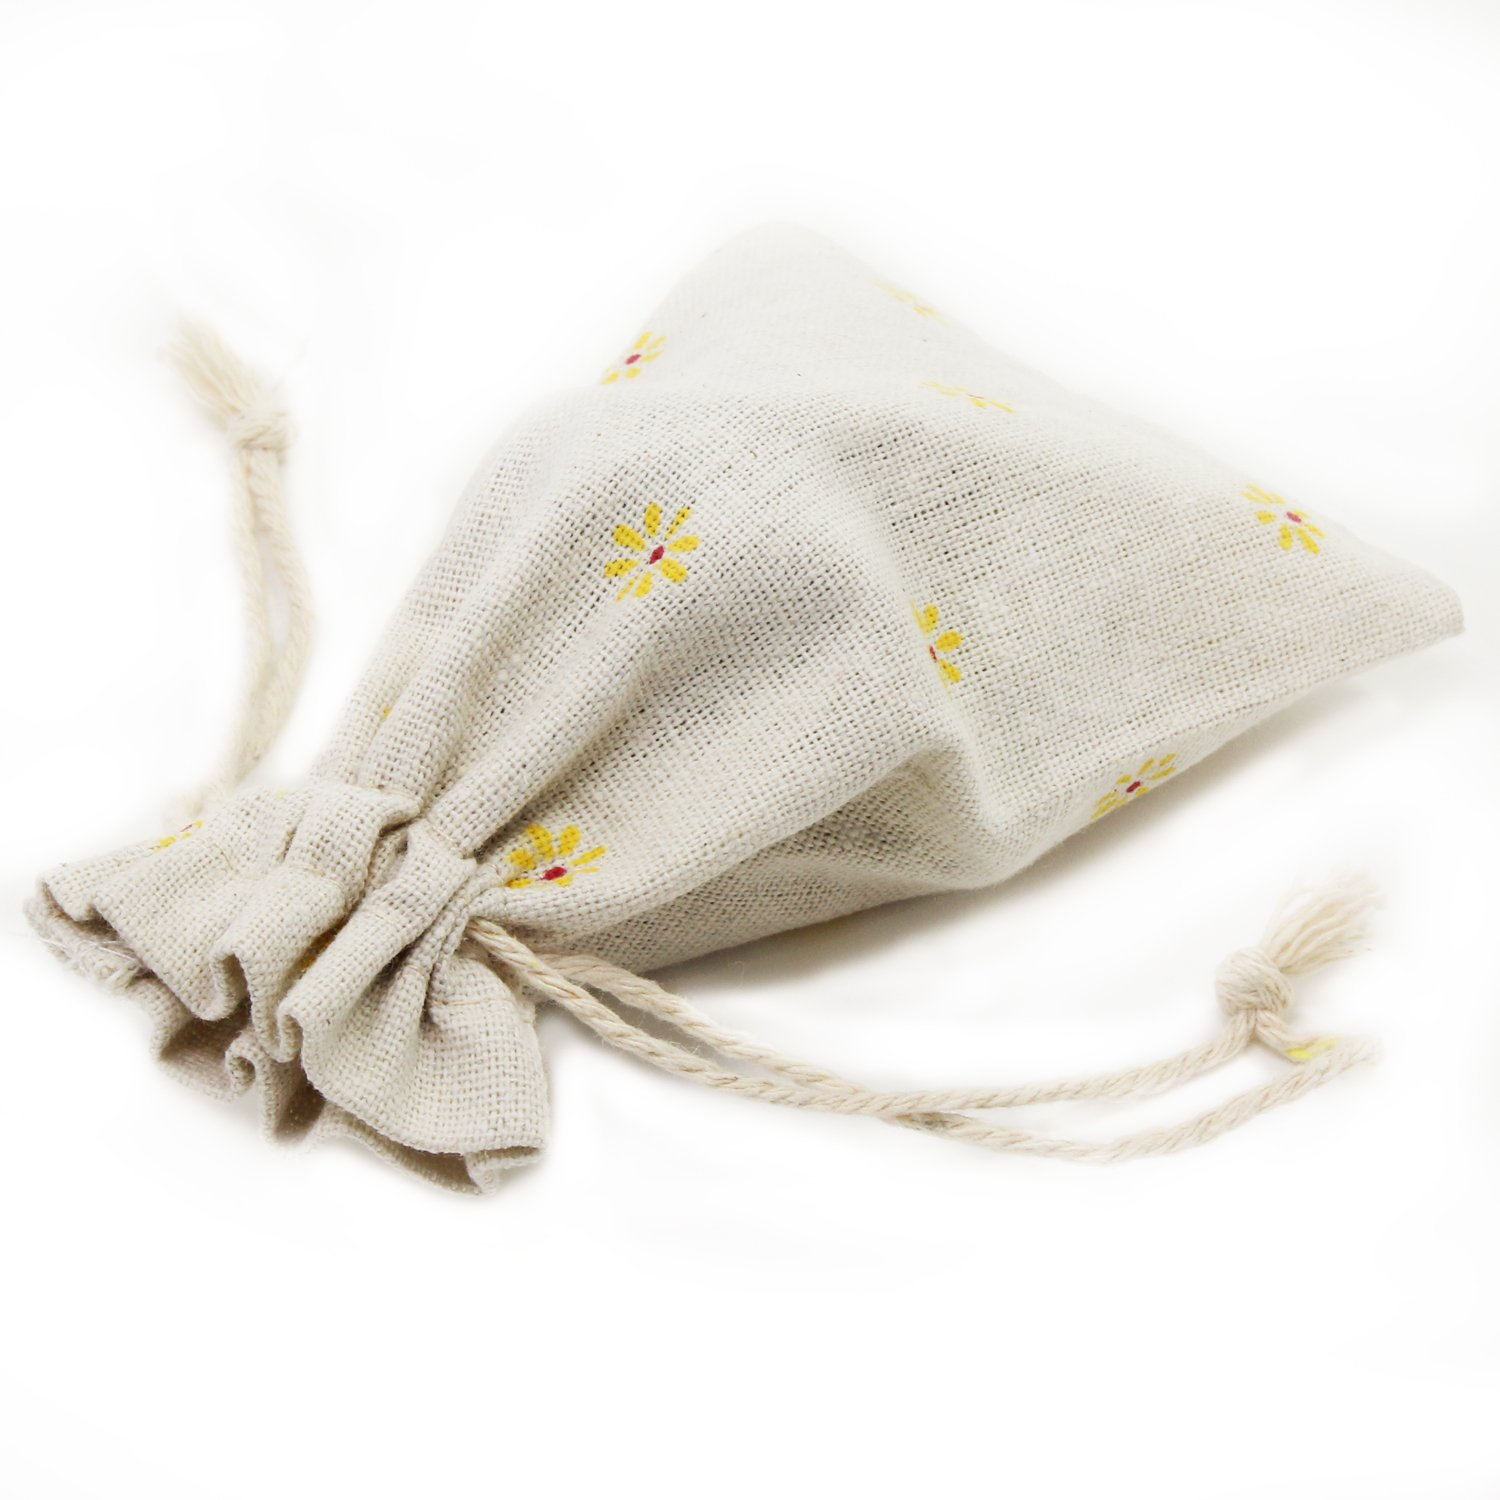 PsmGoods Linen Bags Hessian Drawstring Bags Gift Bags Jewelry Favors Bags Burlap Lavender Sachet Drawstring Pouch Flax Cotton Jewelry Pouch Bag Wedding Decorations Favor Gift Wrap 10*14cm 20 Pieces